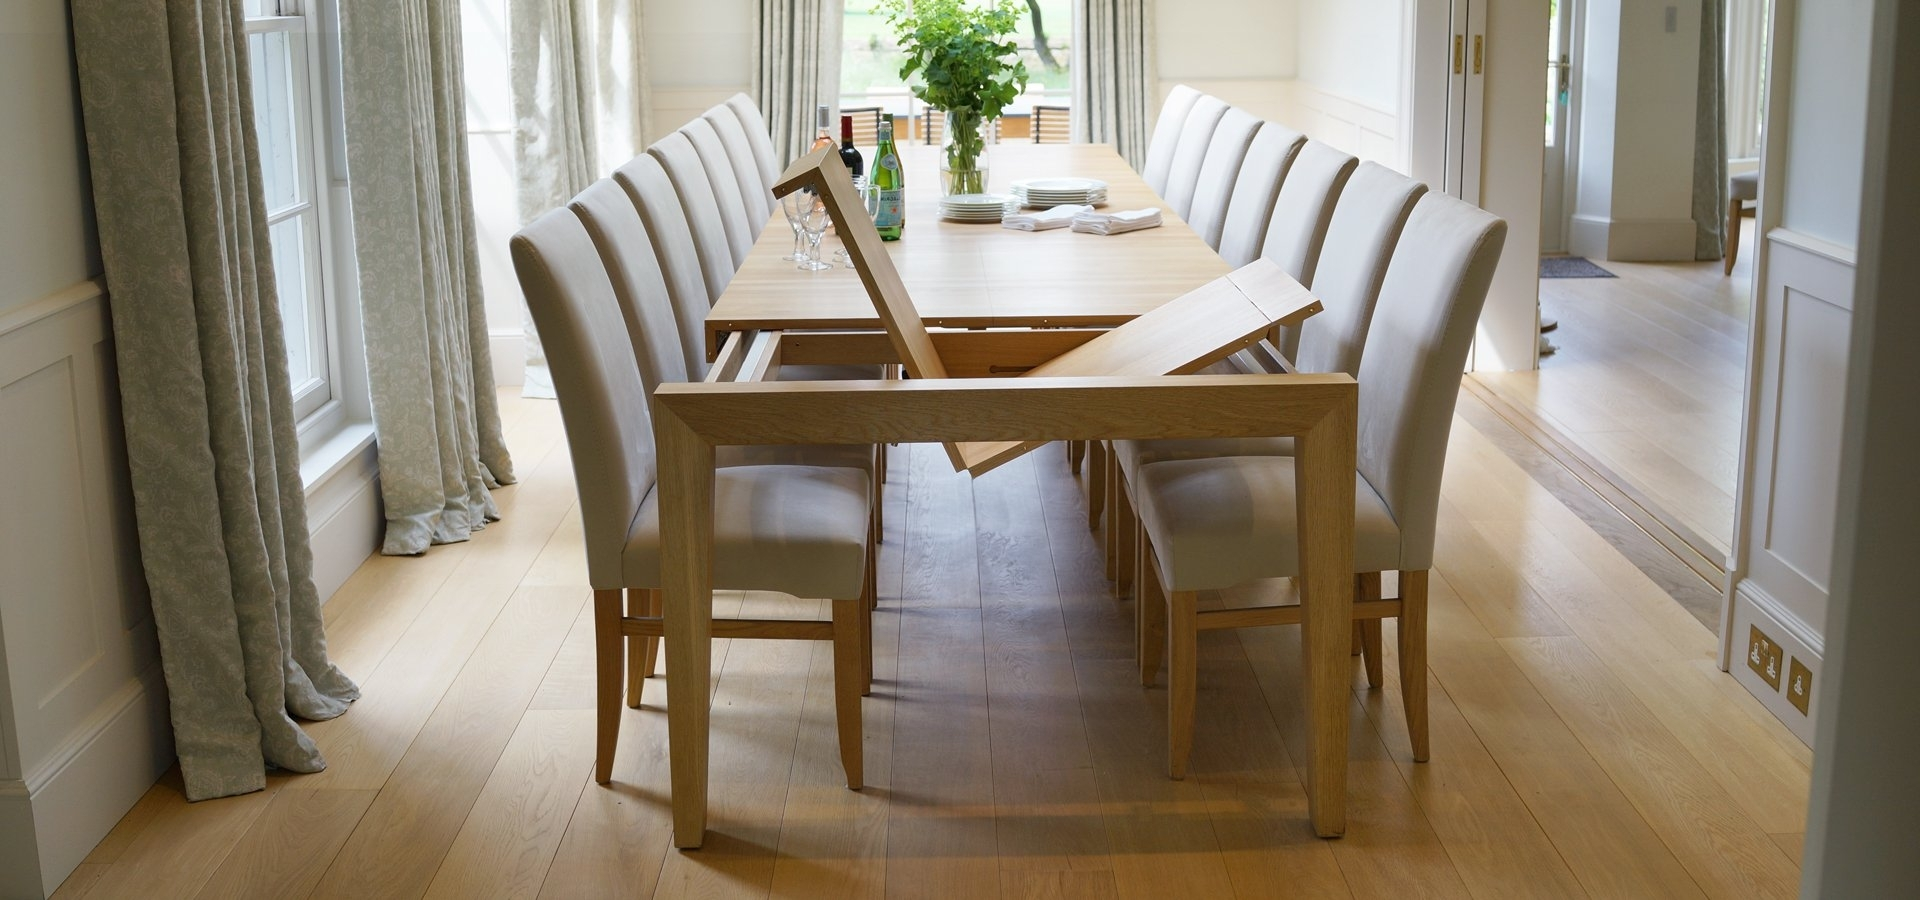 2017 Round Oak Extendable Dining Tables And Chairs Throughout Contemporary Dining Tables & Furnitureberrydesign (View 1 of 25)